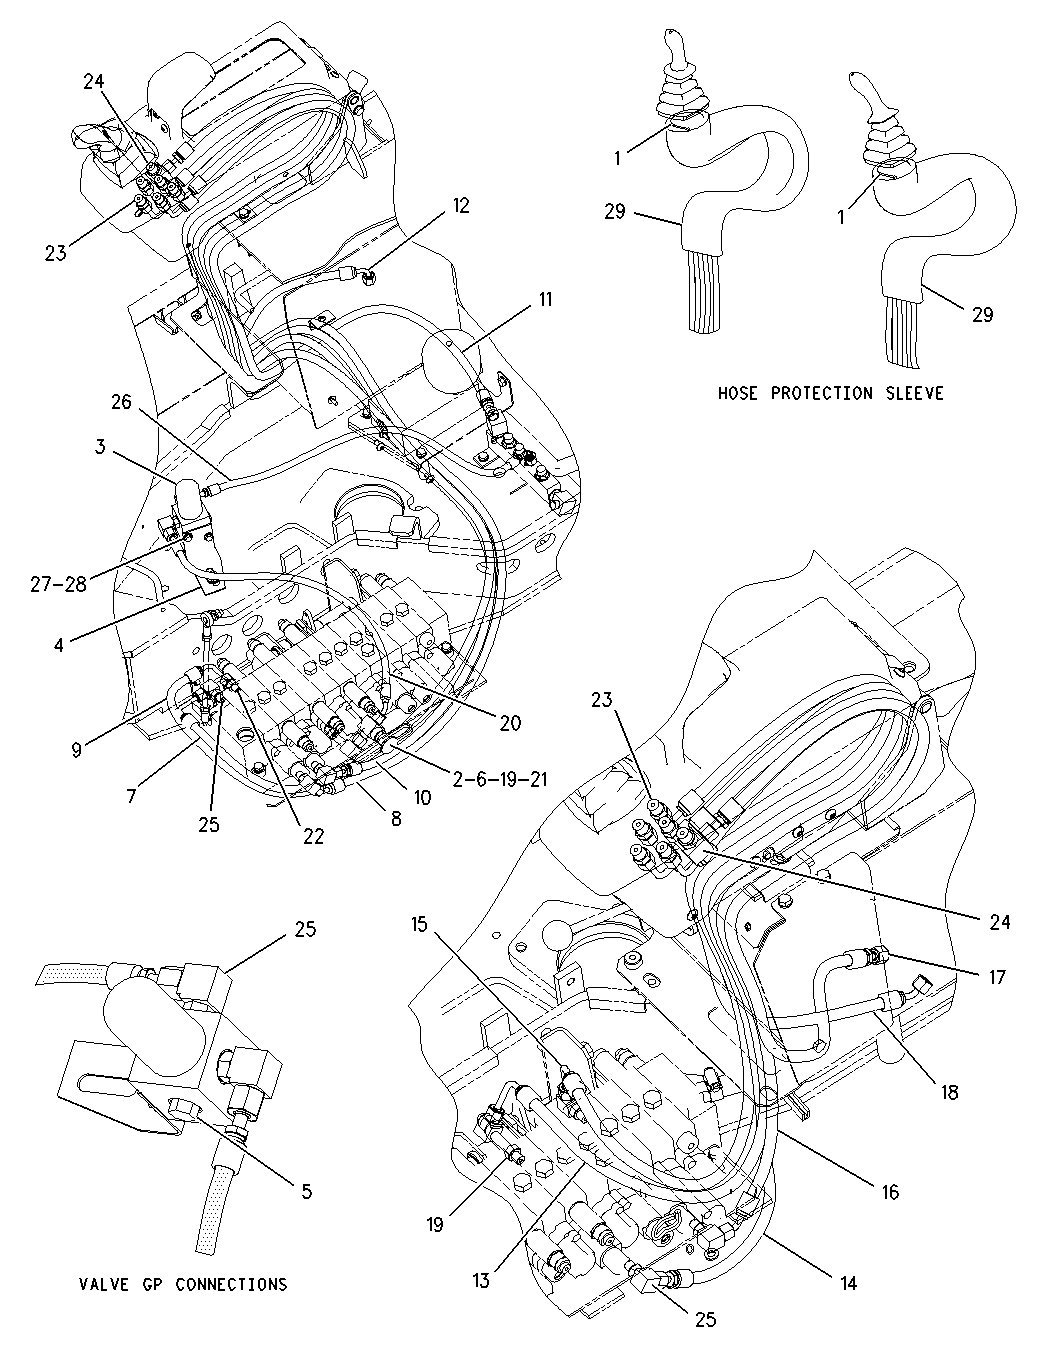 caterpillar d3 hydraulc schematics